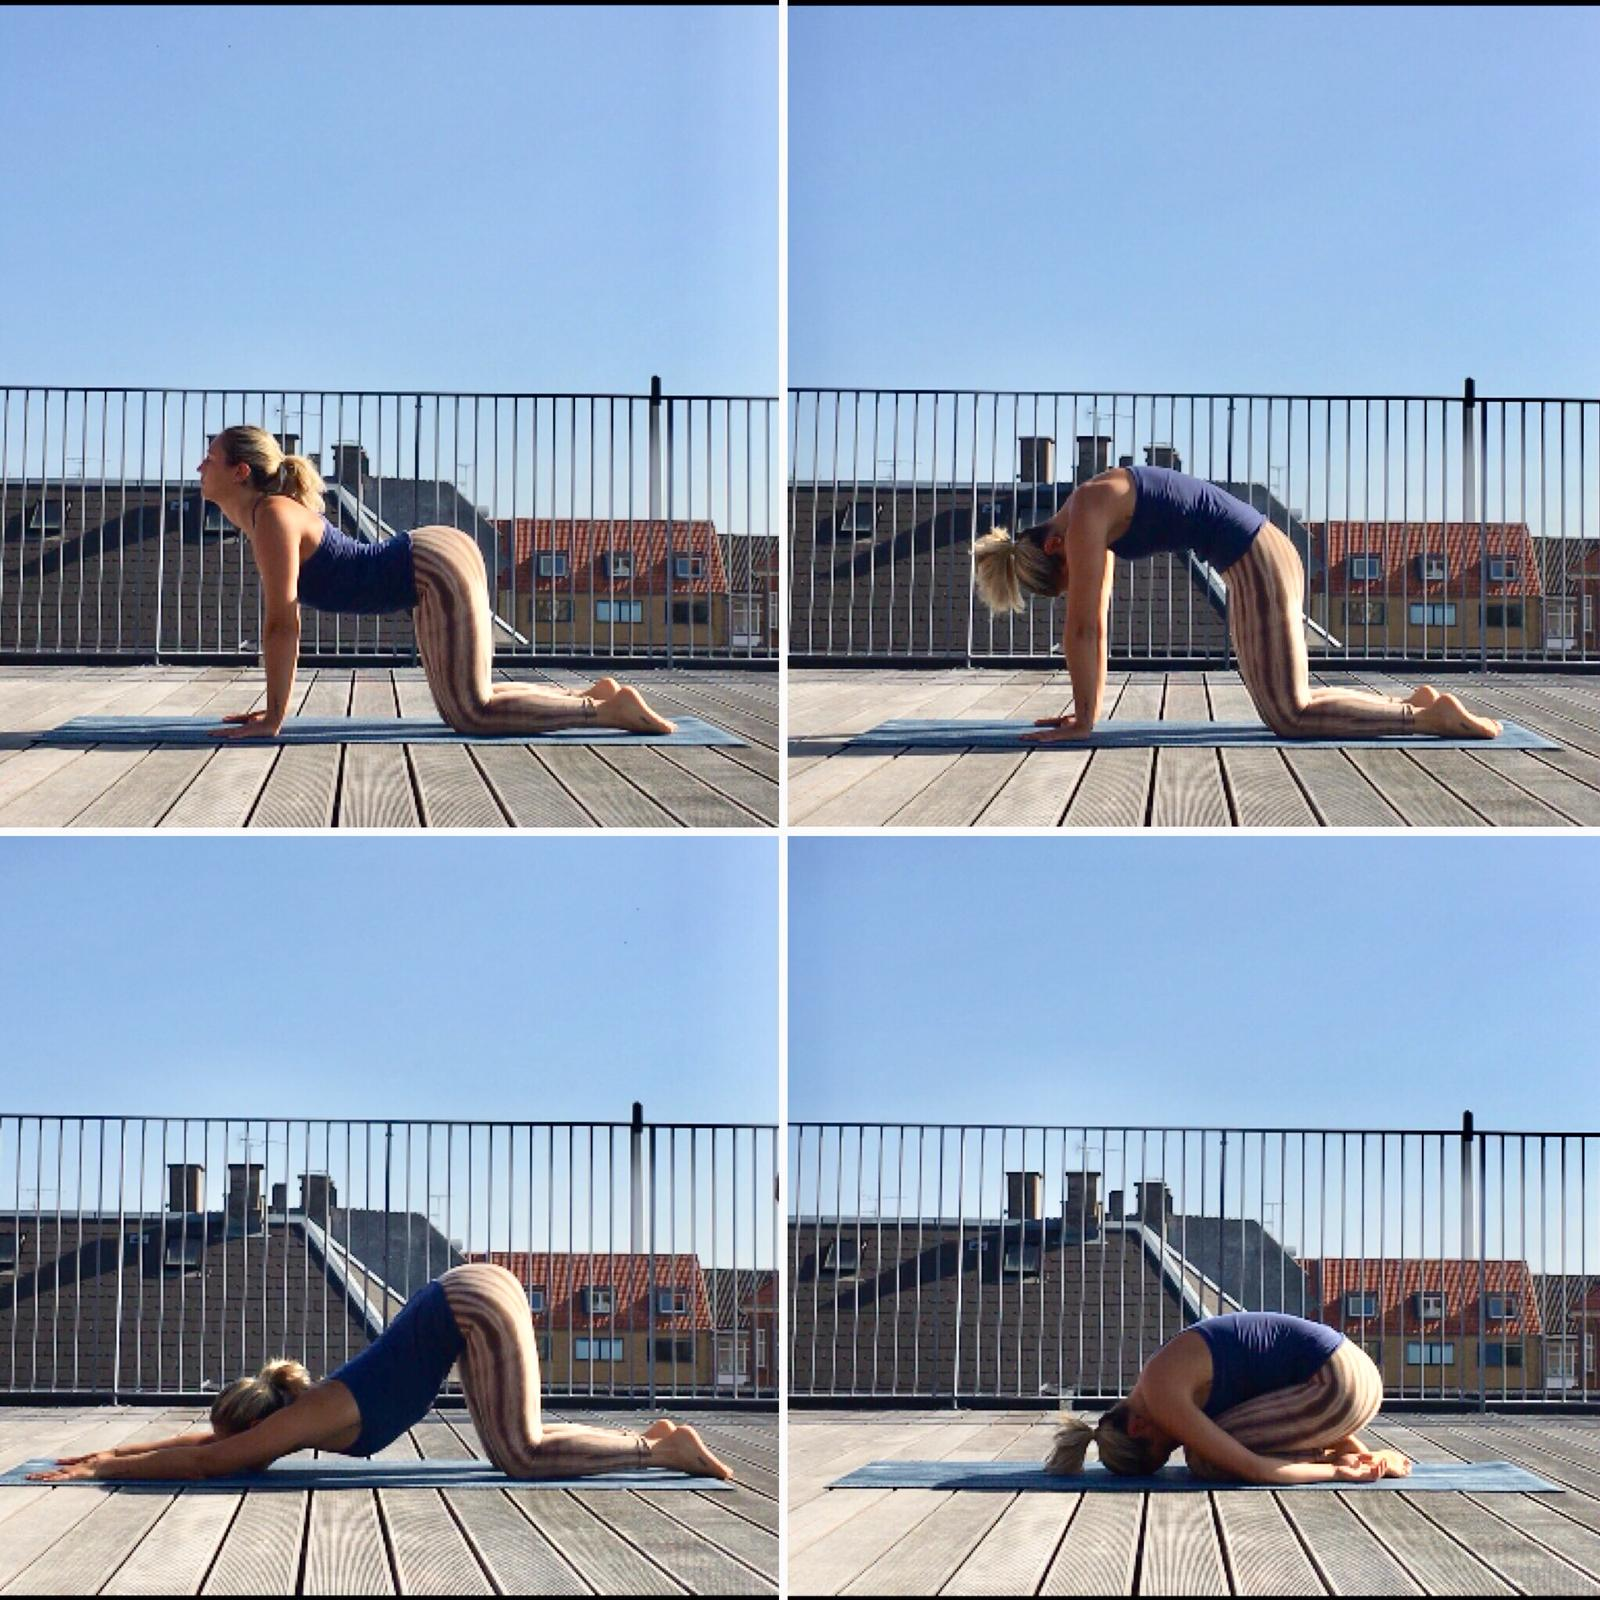 Rooftop yoga sequence